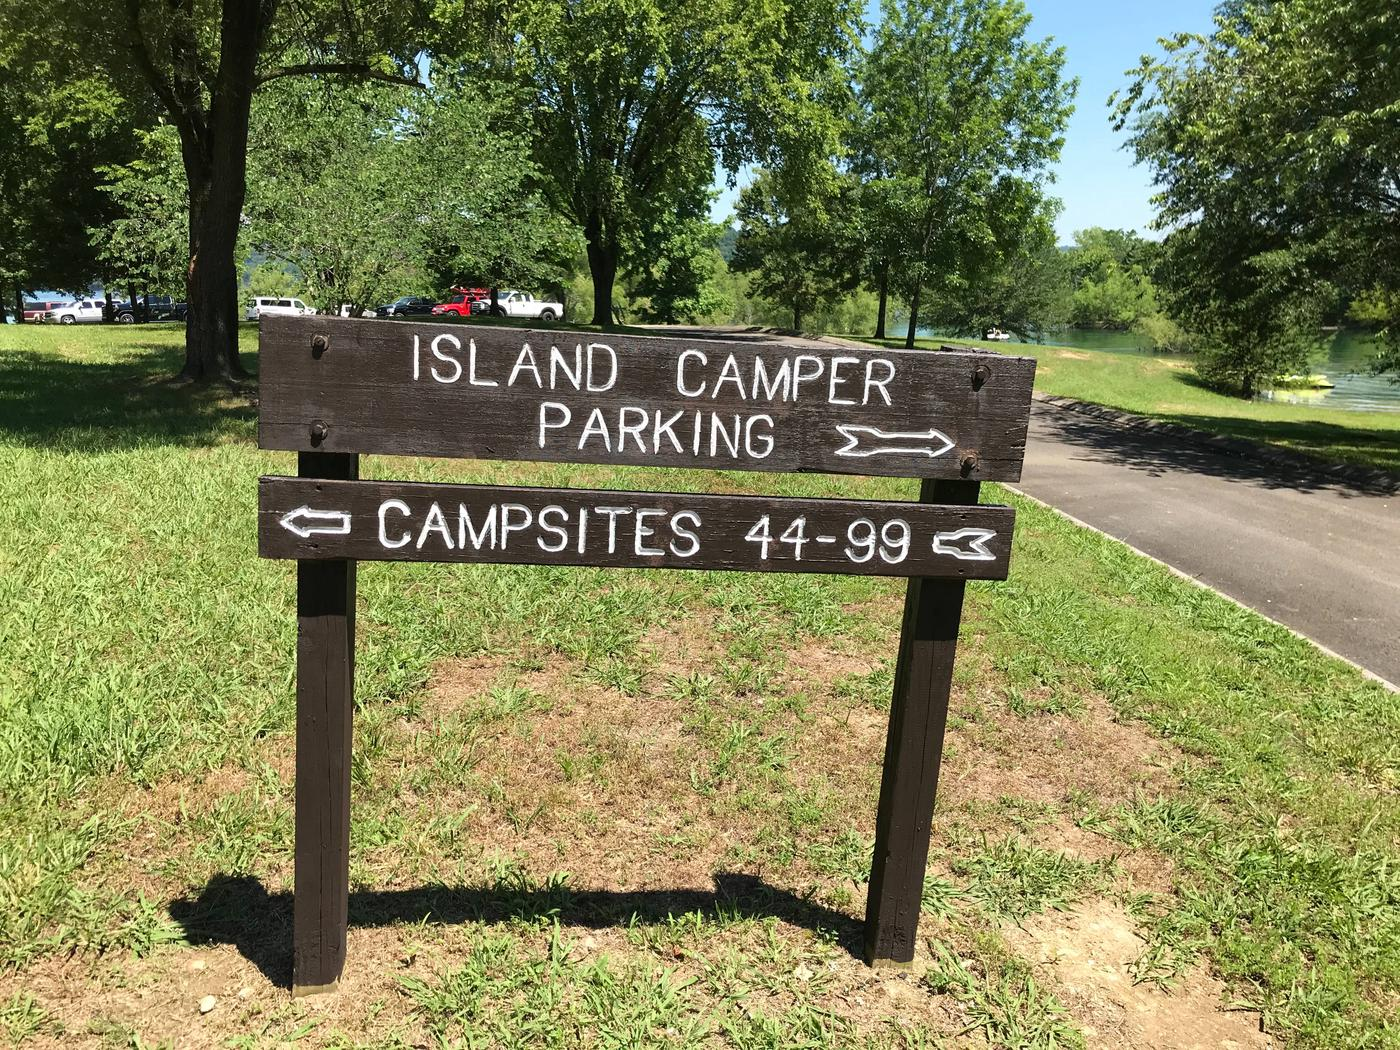 LILLYDALE CAMPGROUND SITE # 109 ISLAND CAMPER PARKING SIGN